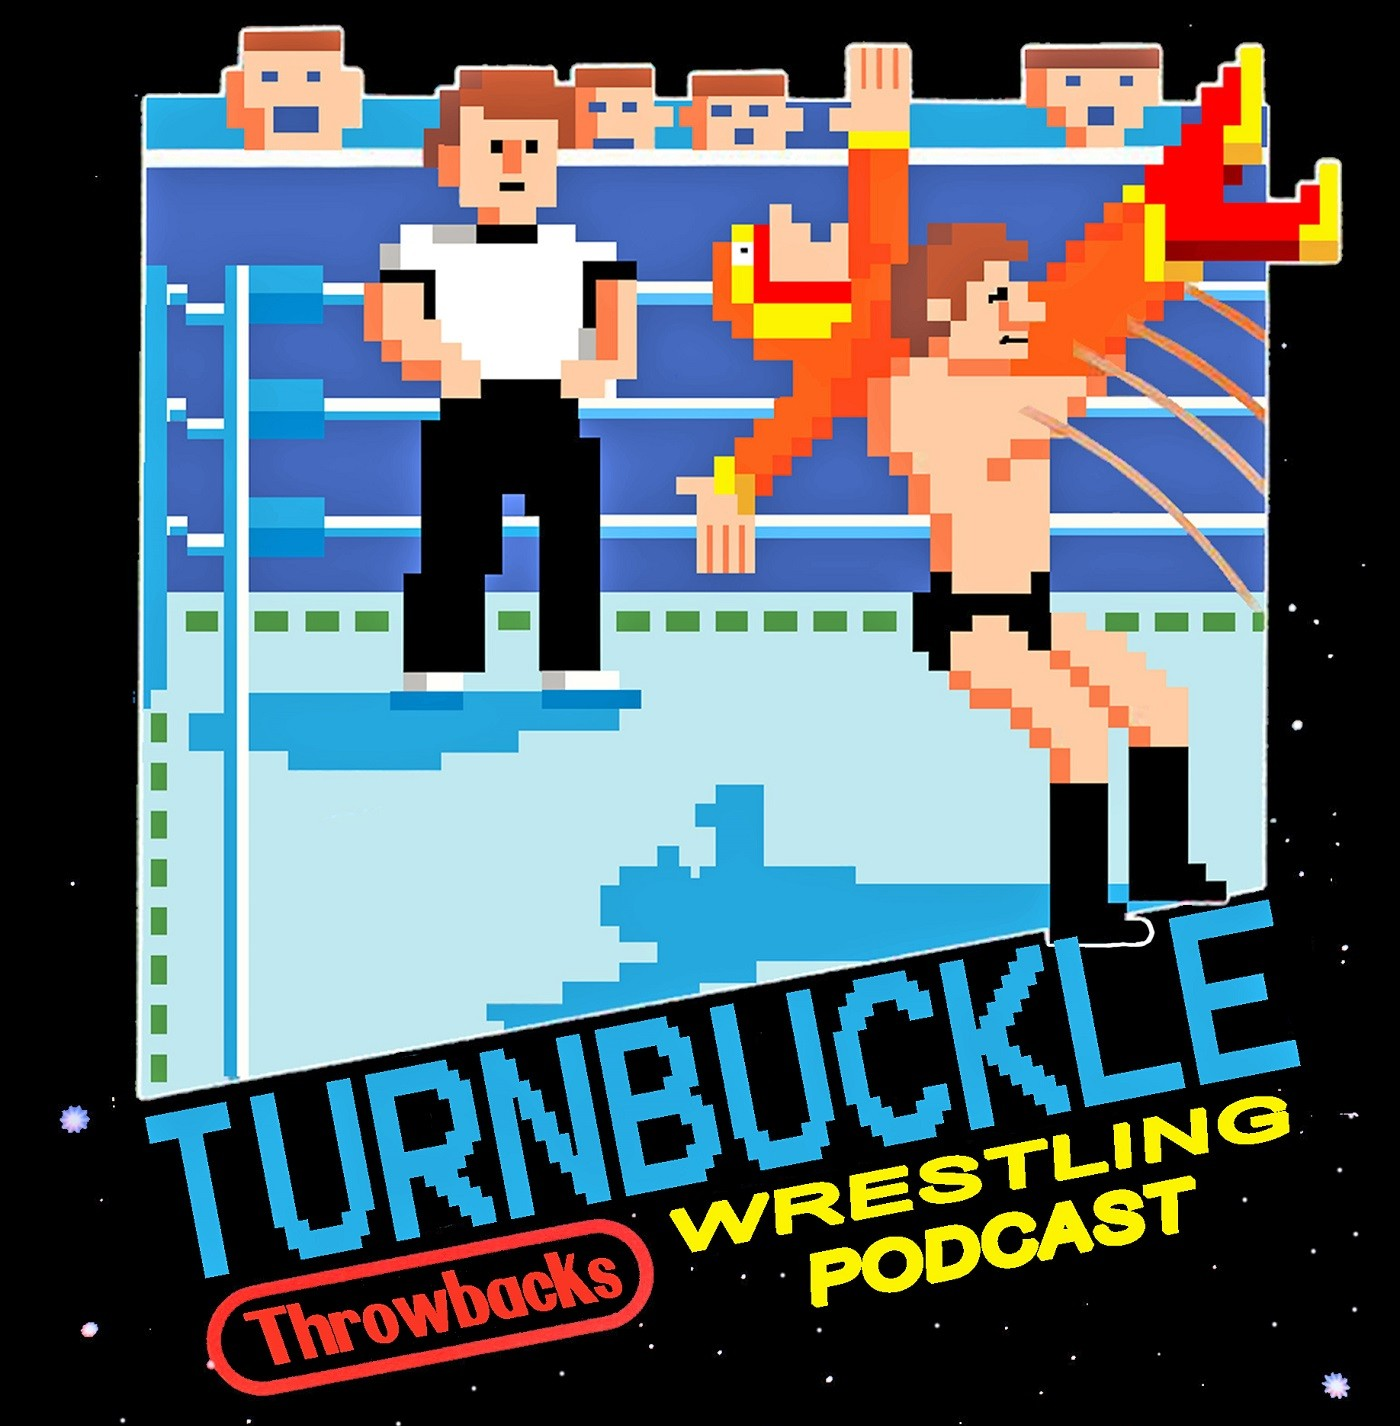 Turnbuckle Throwbacks Wrestling Podcast